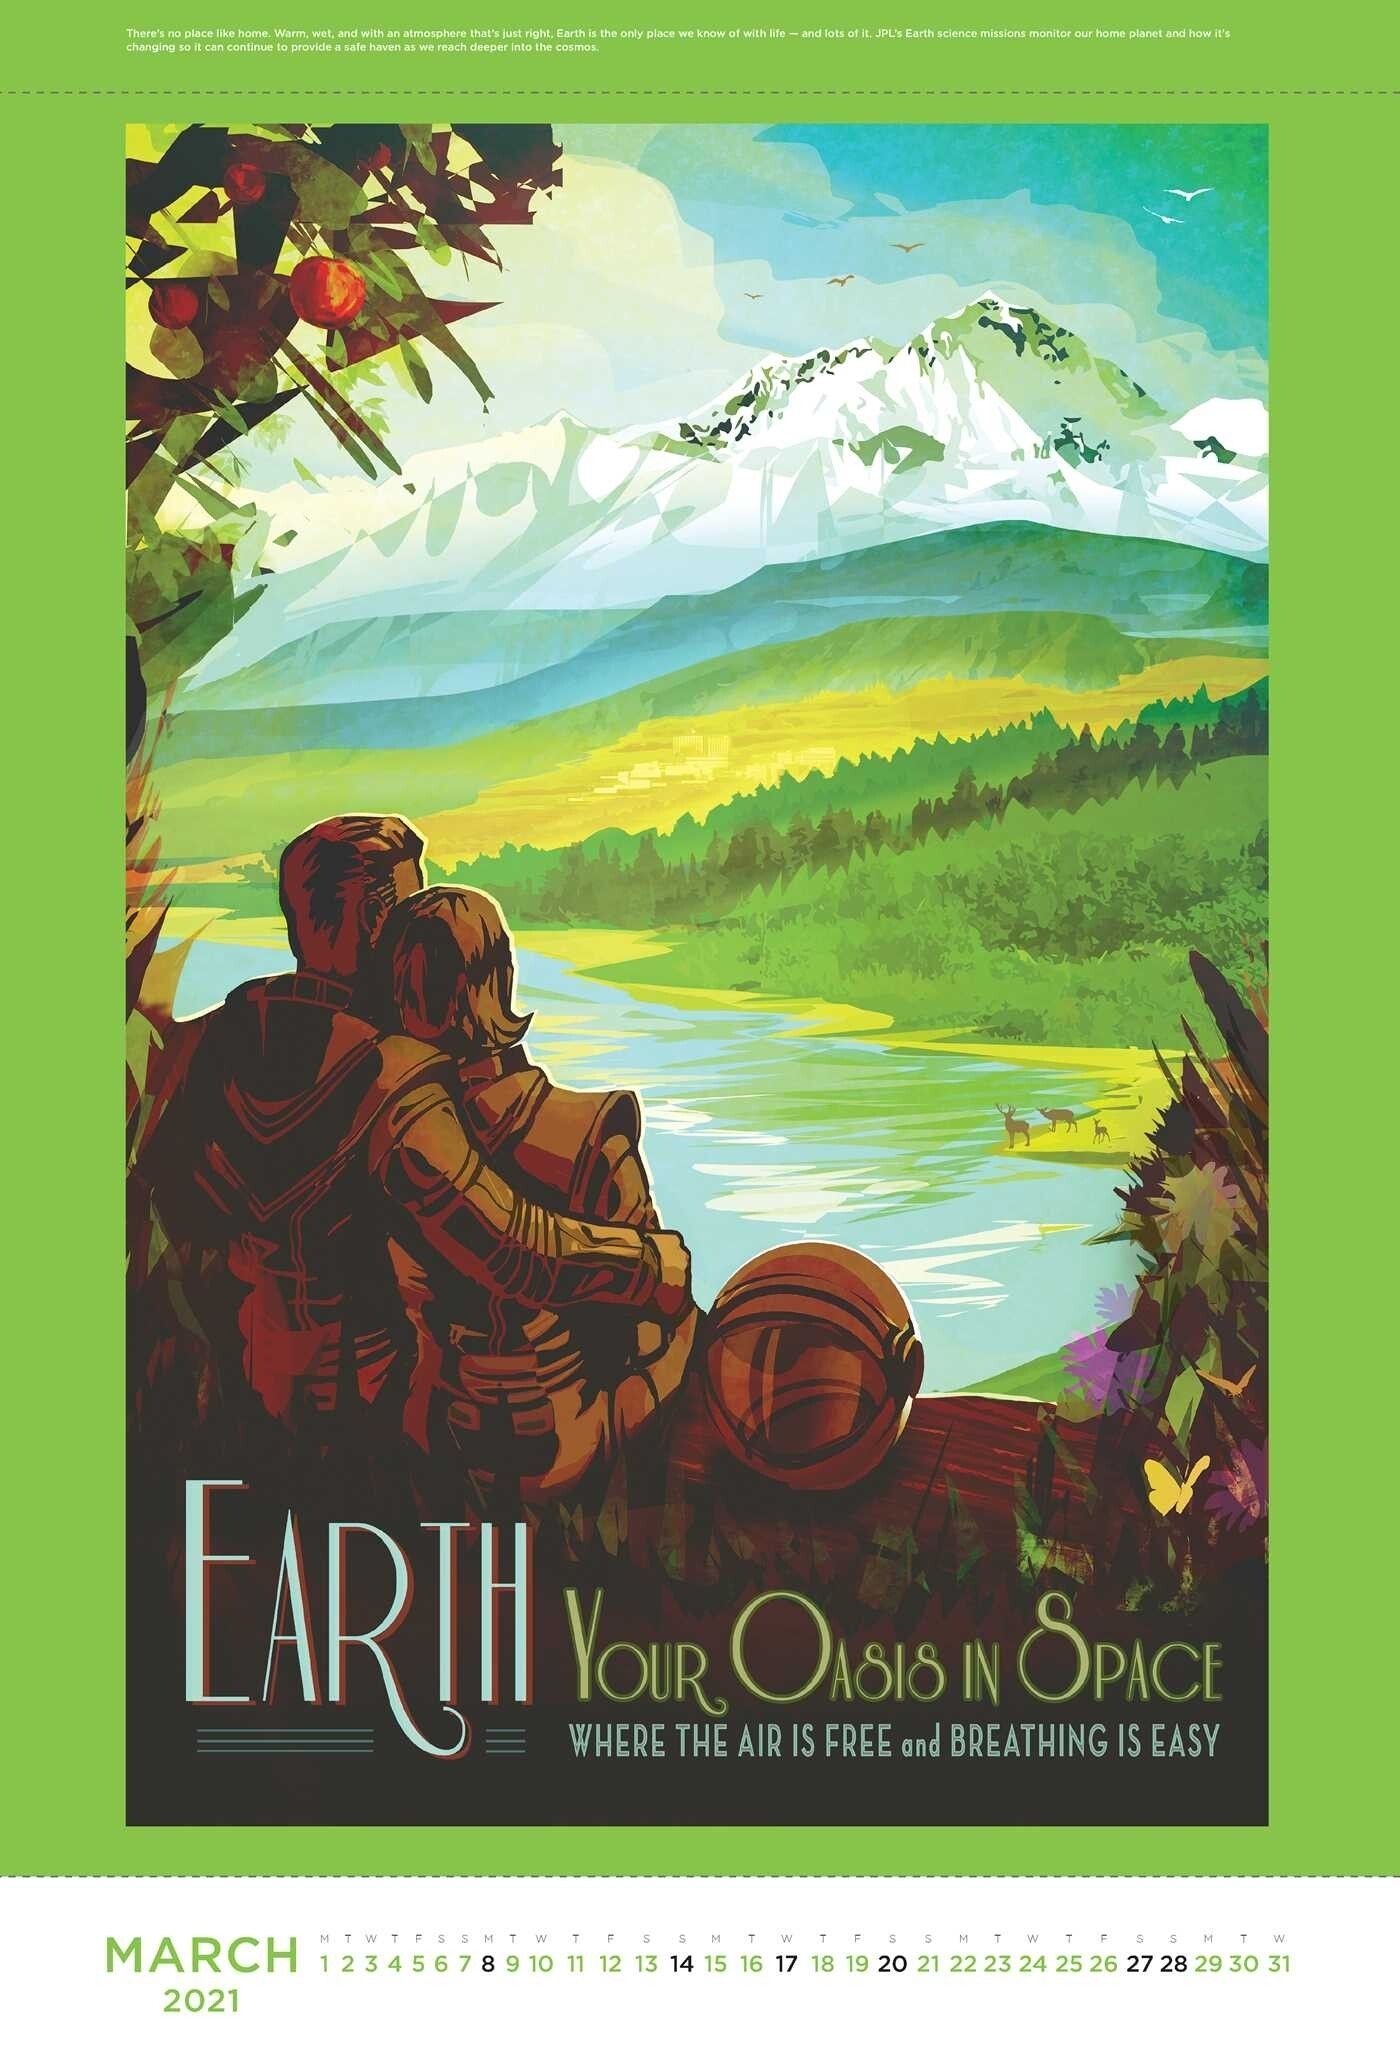 Space Travel Posters 2021 Poster Calendar - Book Summary